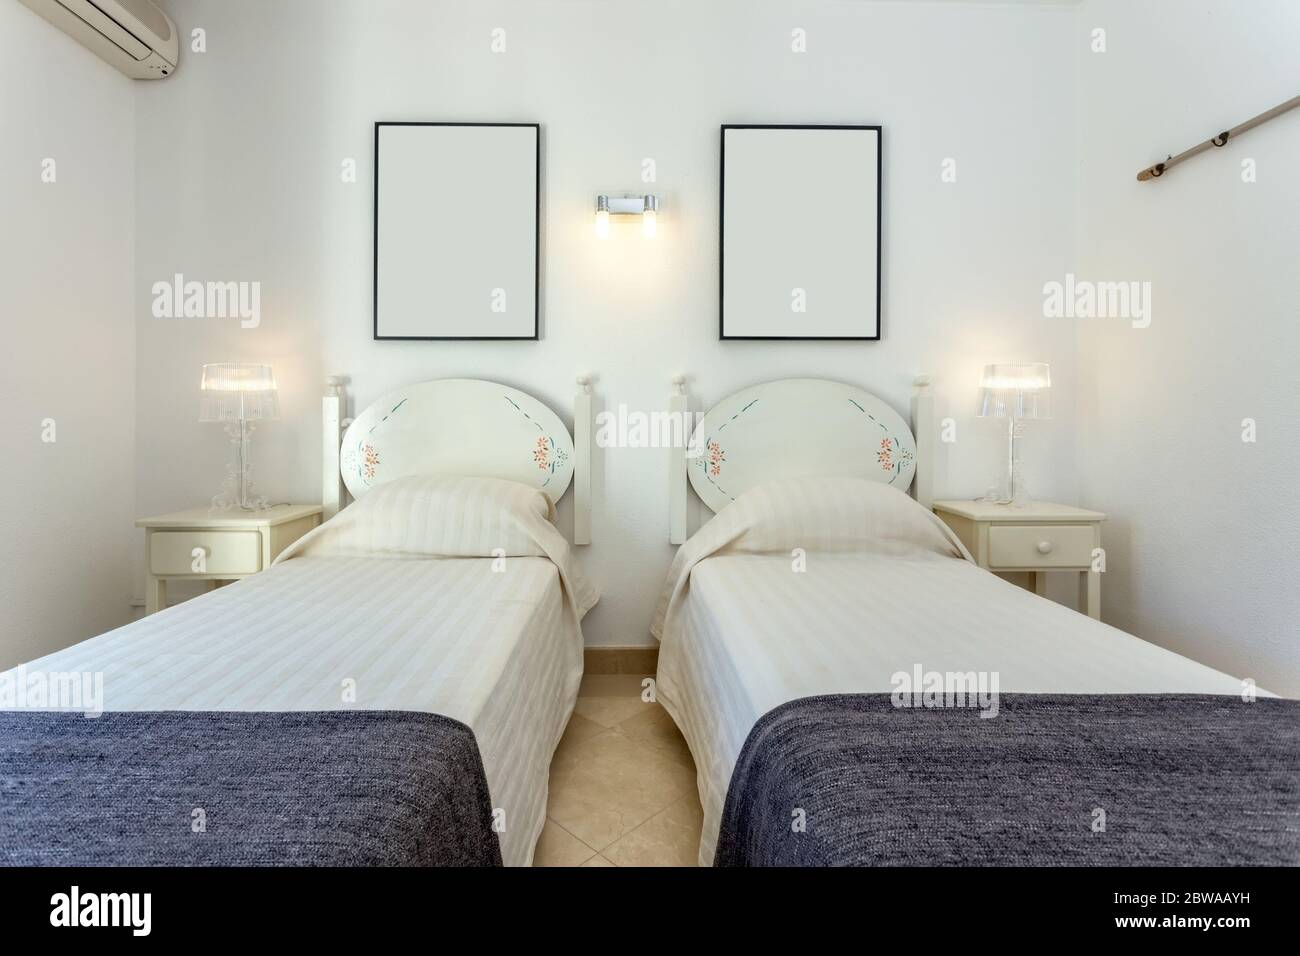 Modern Bedroom With Two Single Beds European Hotel Design Stock Photo Alamy